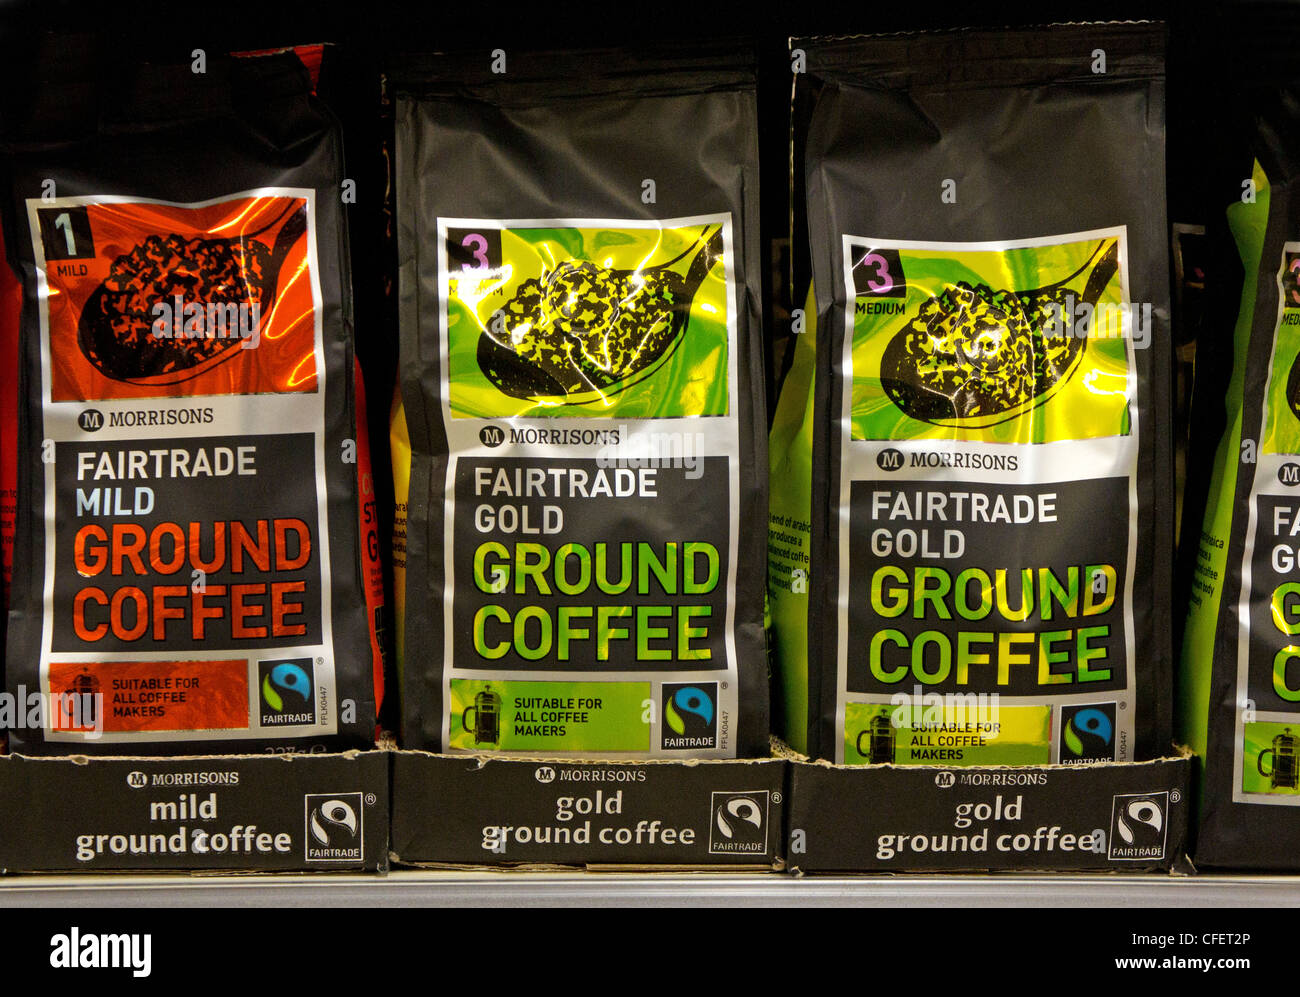 Morrisons own brand Fairtrade ground coffee - Stock Image